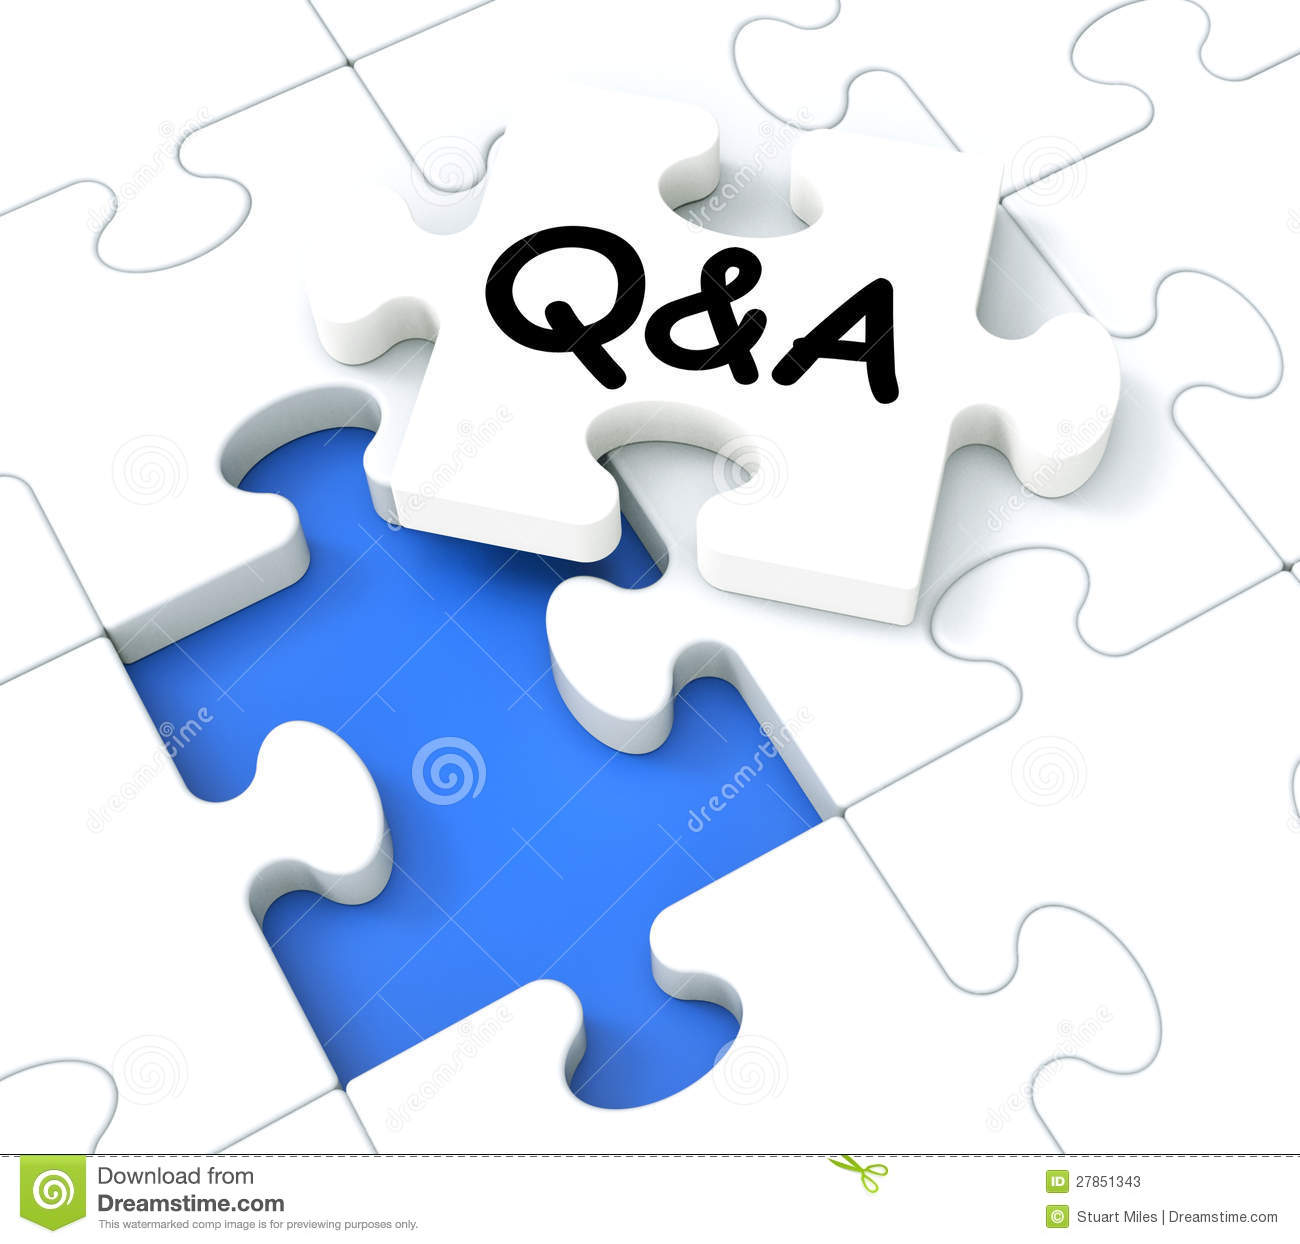 how to answer a describe question in business managemnet